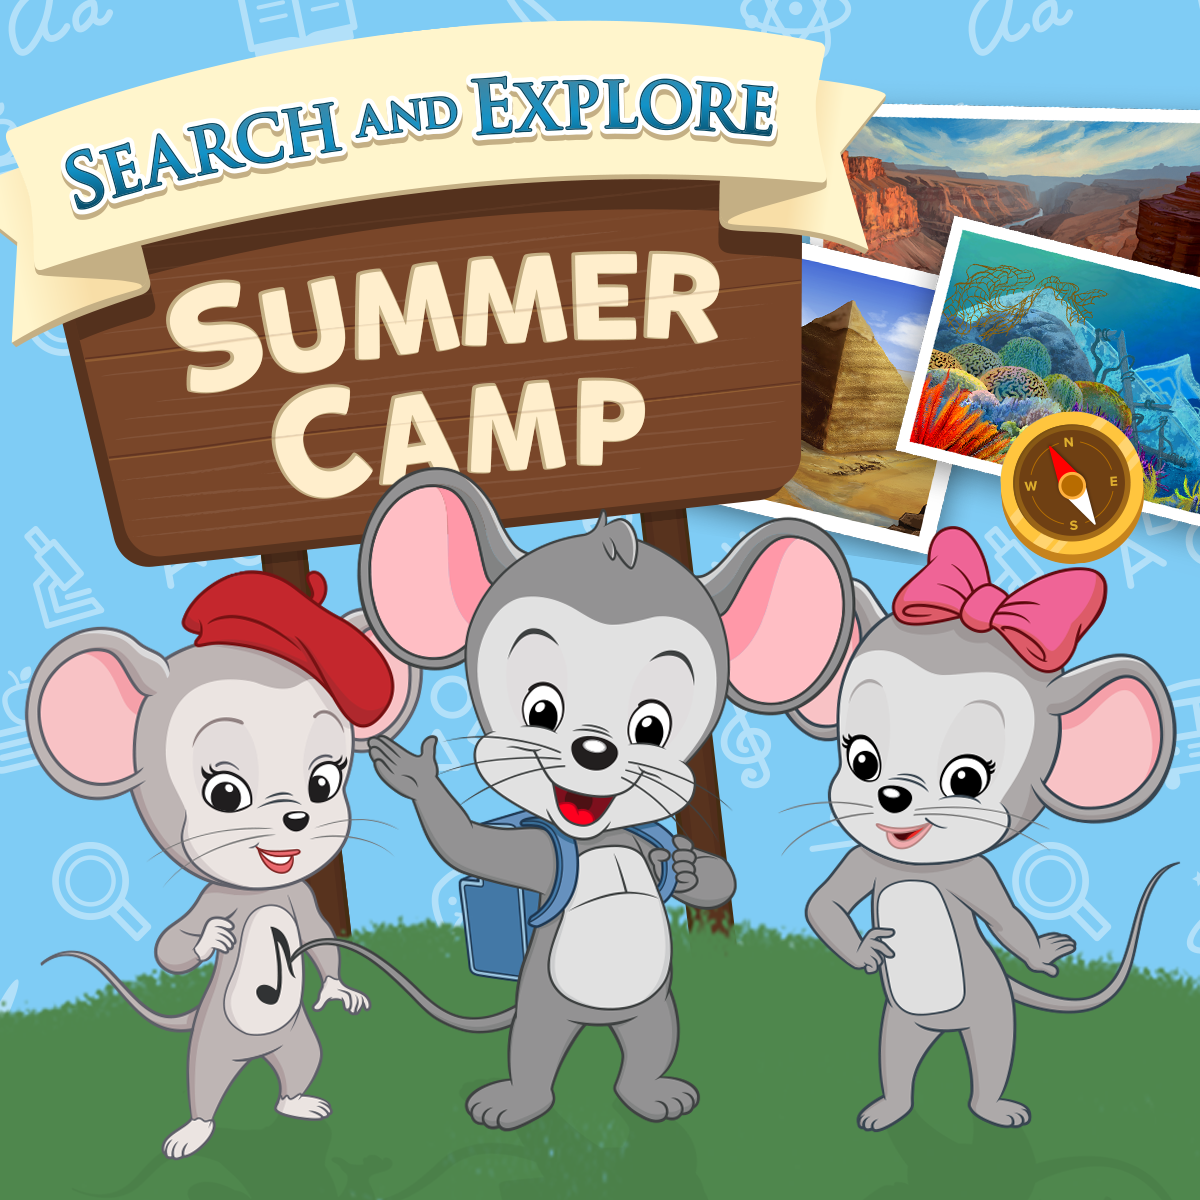 Summercamp Helping All Children Build A Strong Academic Foundation With Abcmouse Adventure Academy Readingiq Summercamp